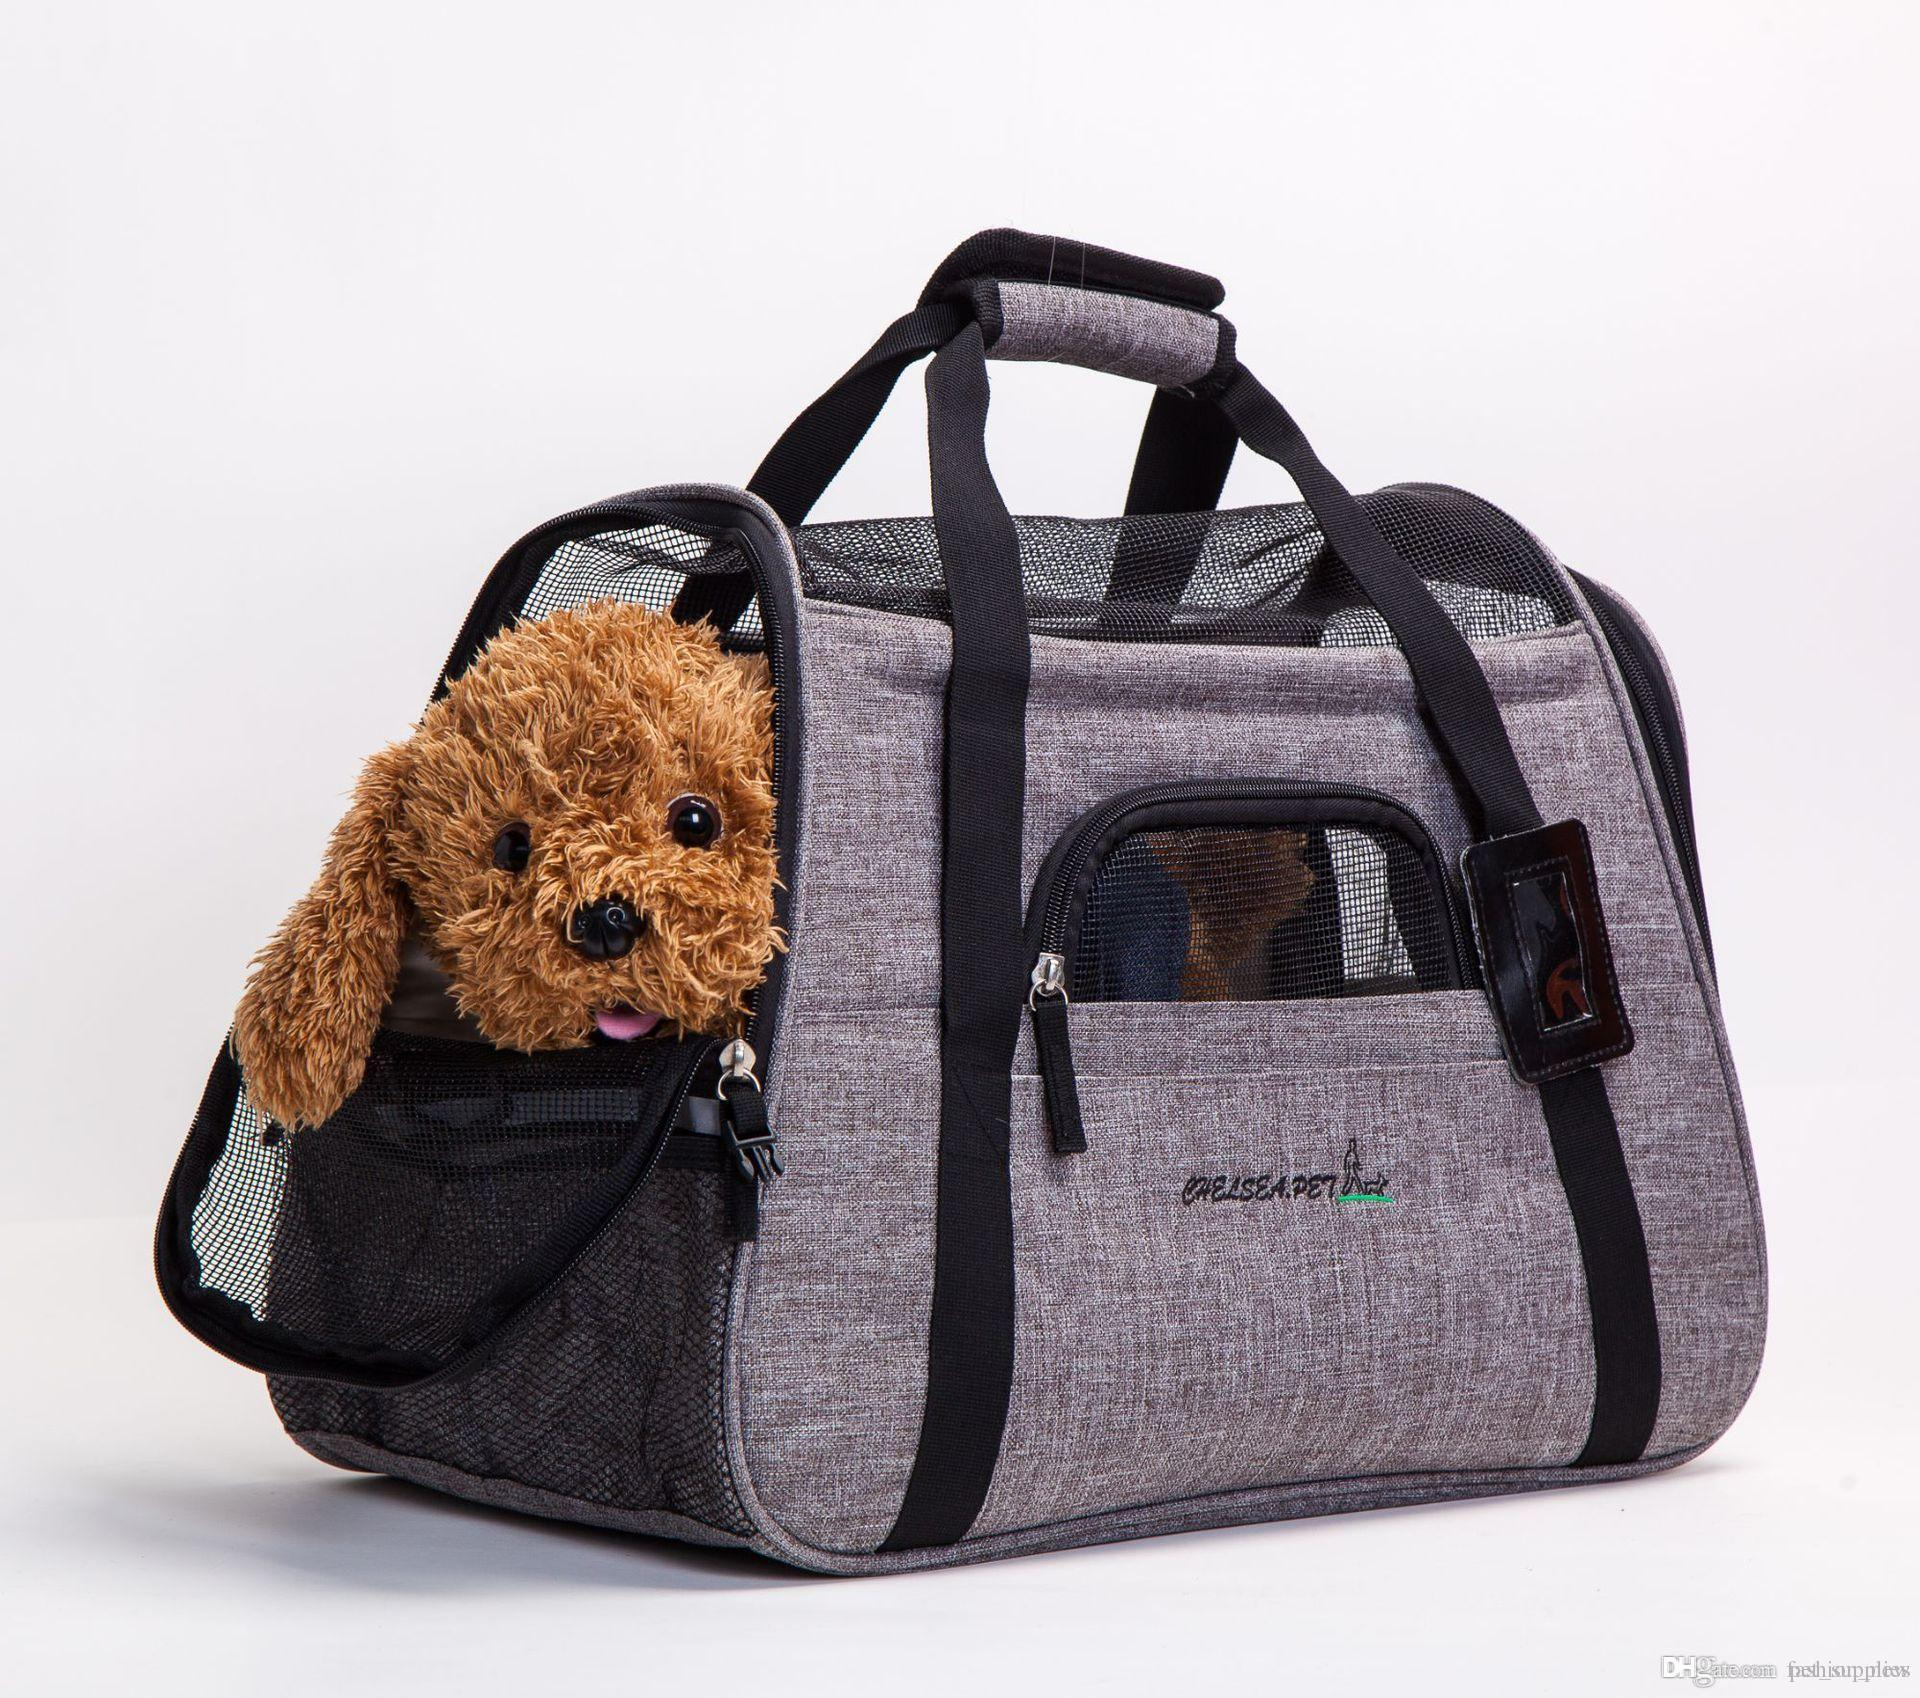 New Arrival Portable Pet Carrier Dog Bag Breathable Mesh Handbag Carrying  Bag For Dog Pet Cat Carrier Outdoor Travel Carrying For Animals UK 2019  From ... c05bd3bc1132